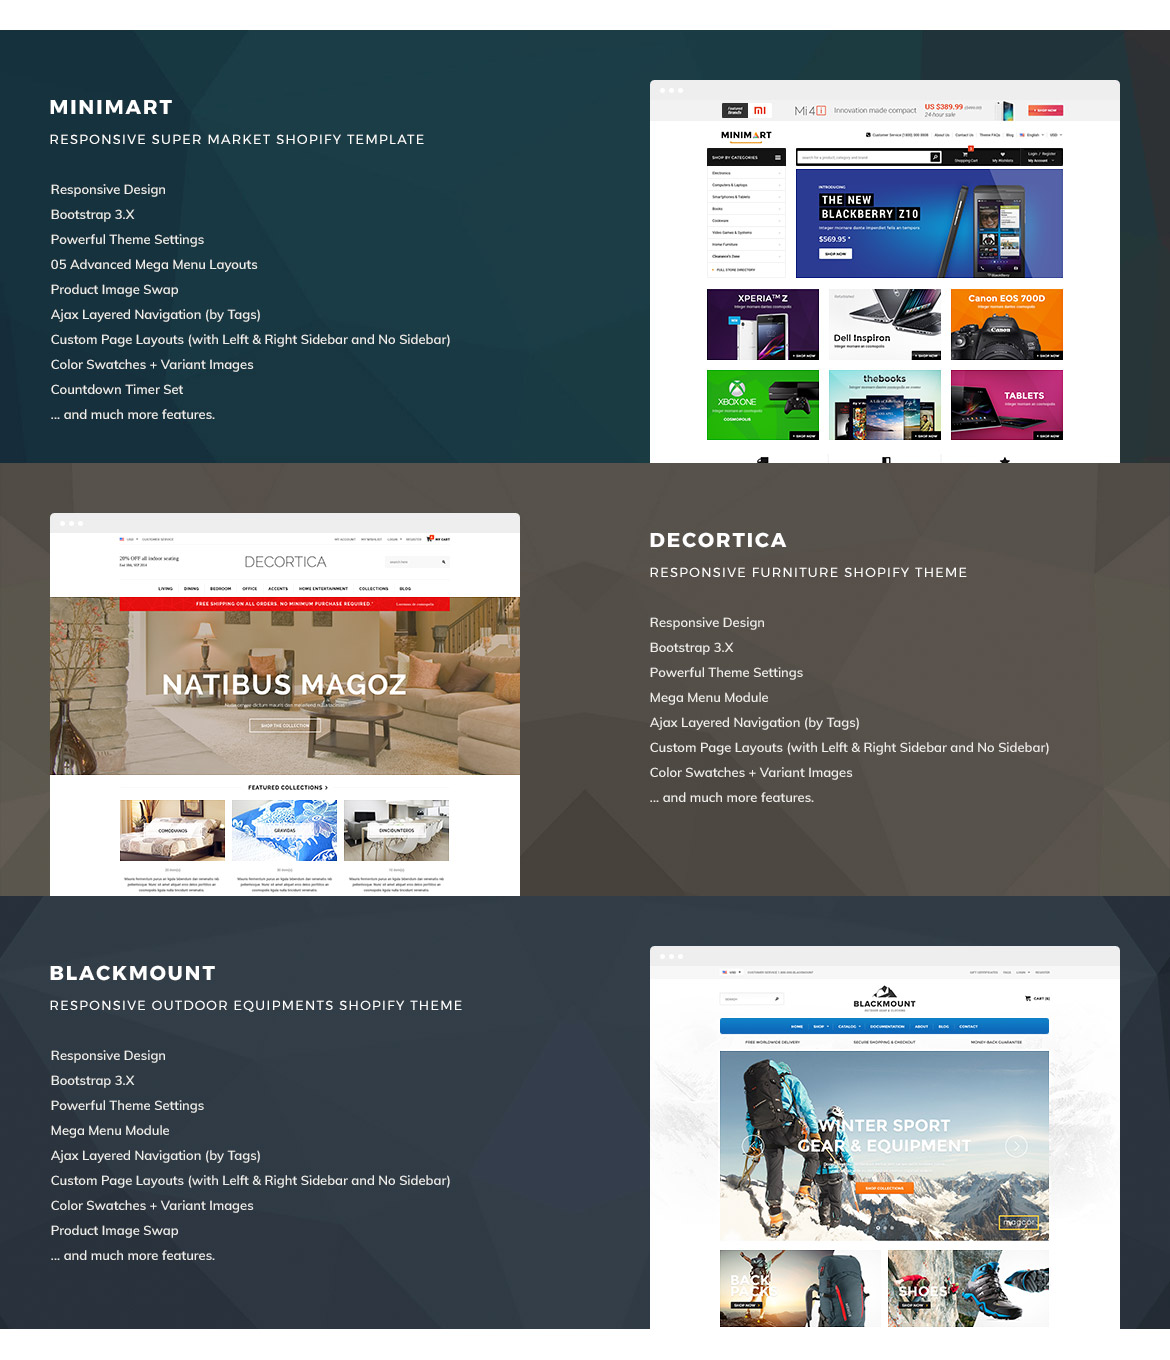 Decortica responsive shopify template for What is a responsive template